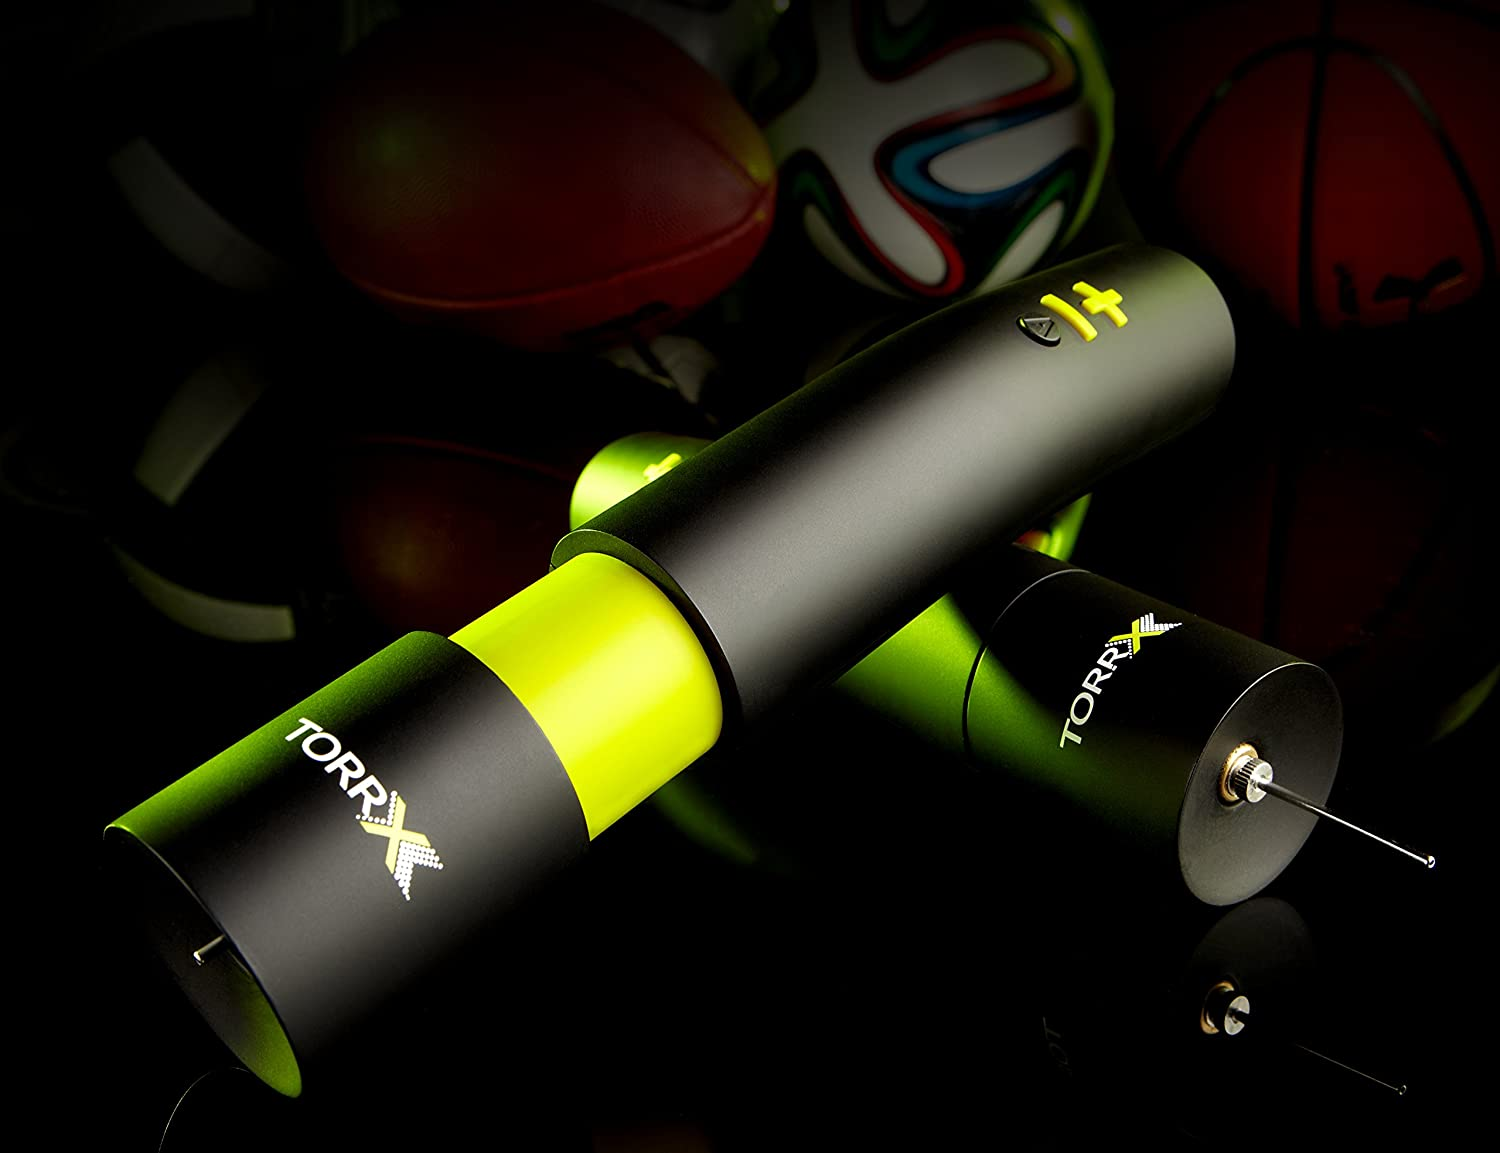 Electric TorrX Smart Ball Pump Soccer, Football, Volleyball, Basketball, Rugby, Water Polo, Handball, etc. Hand held Pump to inflate and Deflate Sports Balls Inc. Automatic